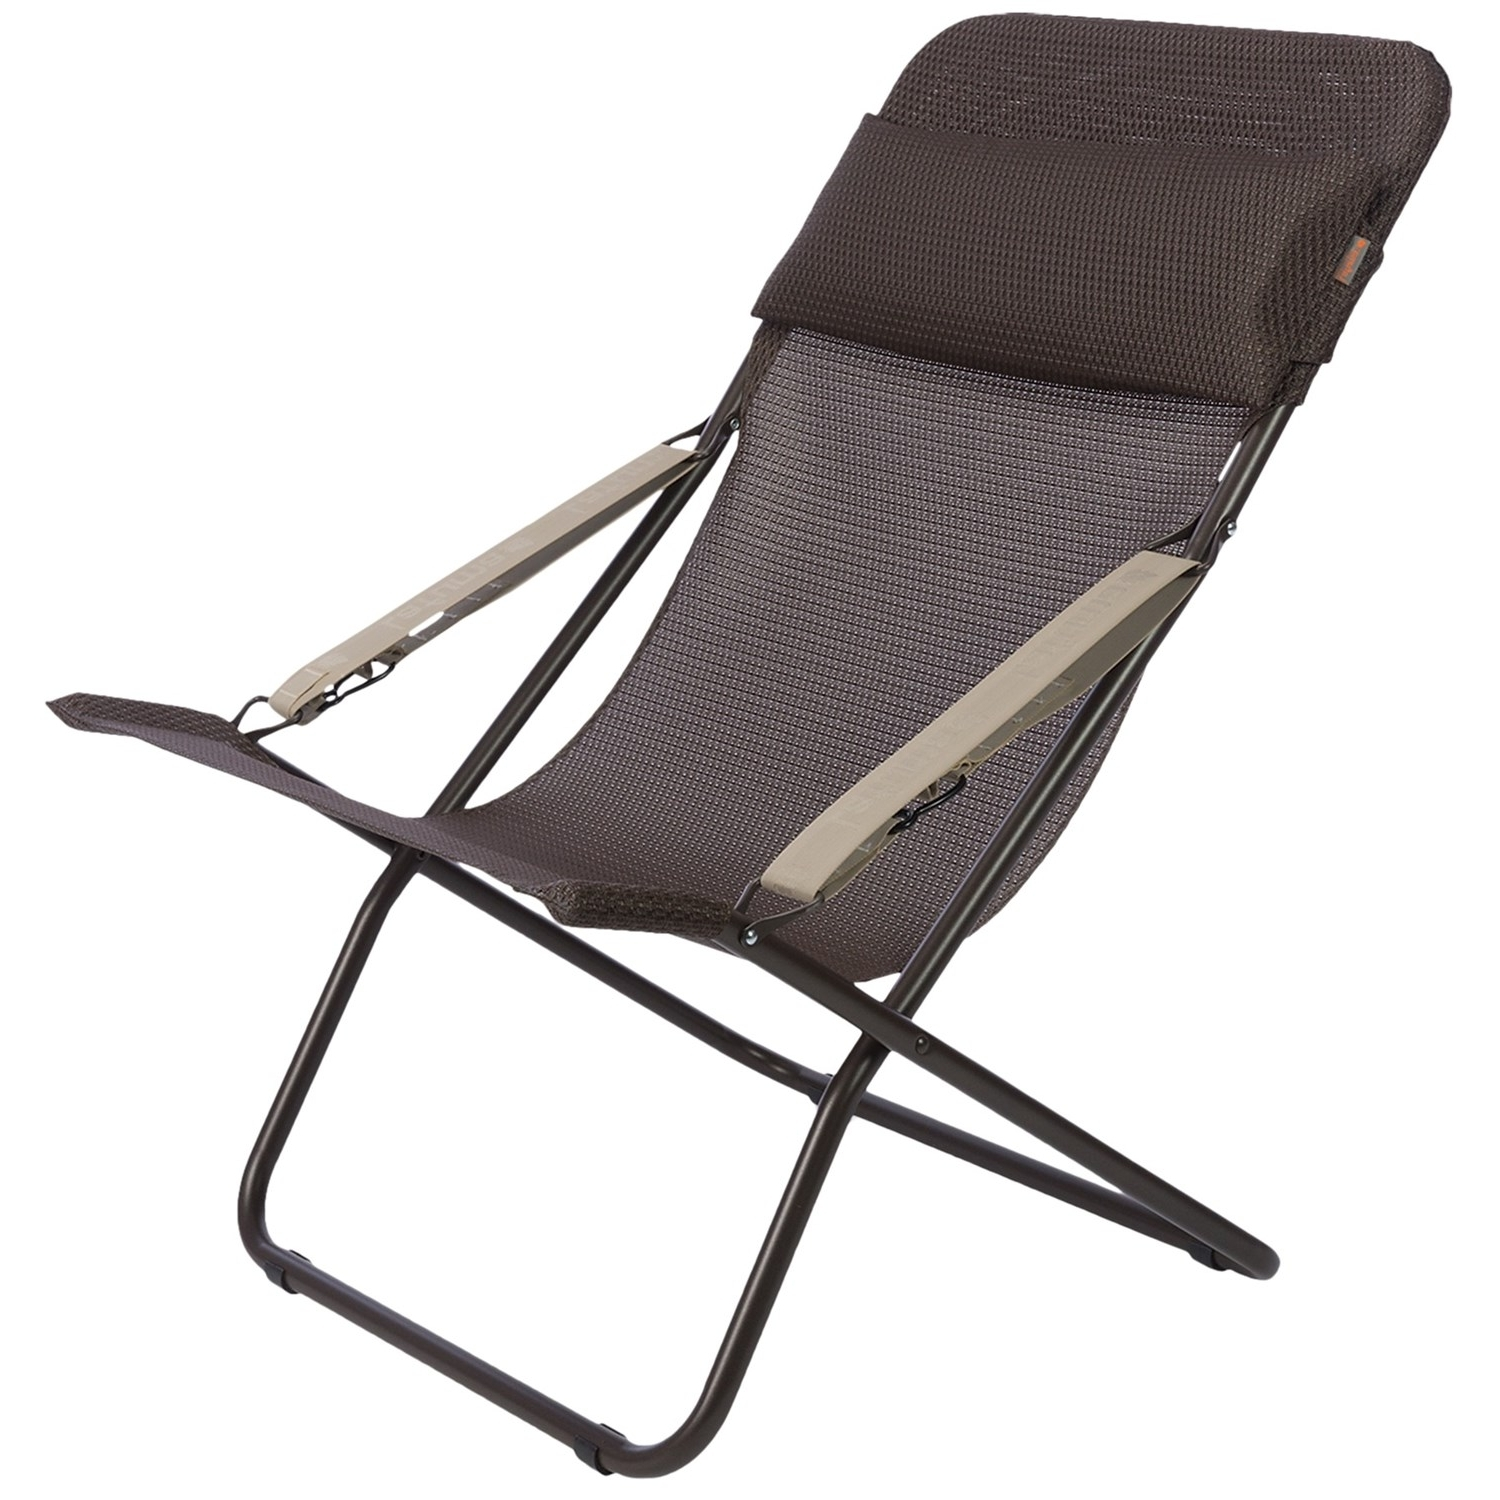 Most Up To Date Lounge Chair : Folding Lawn Chairs Sturdy Outdoor Chaise Lounge Inside Chaise Lounge Folding Chairs (View 10 of 15)